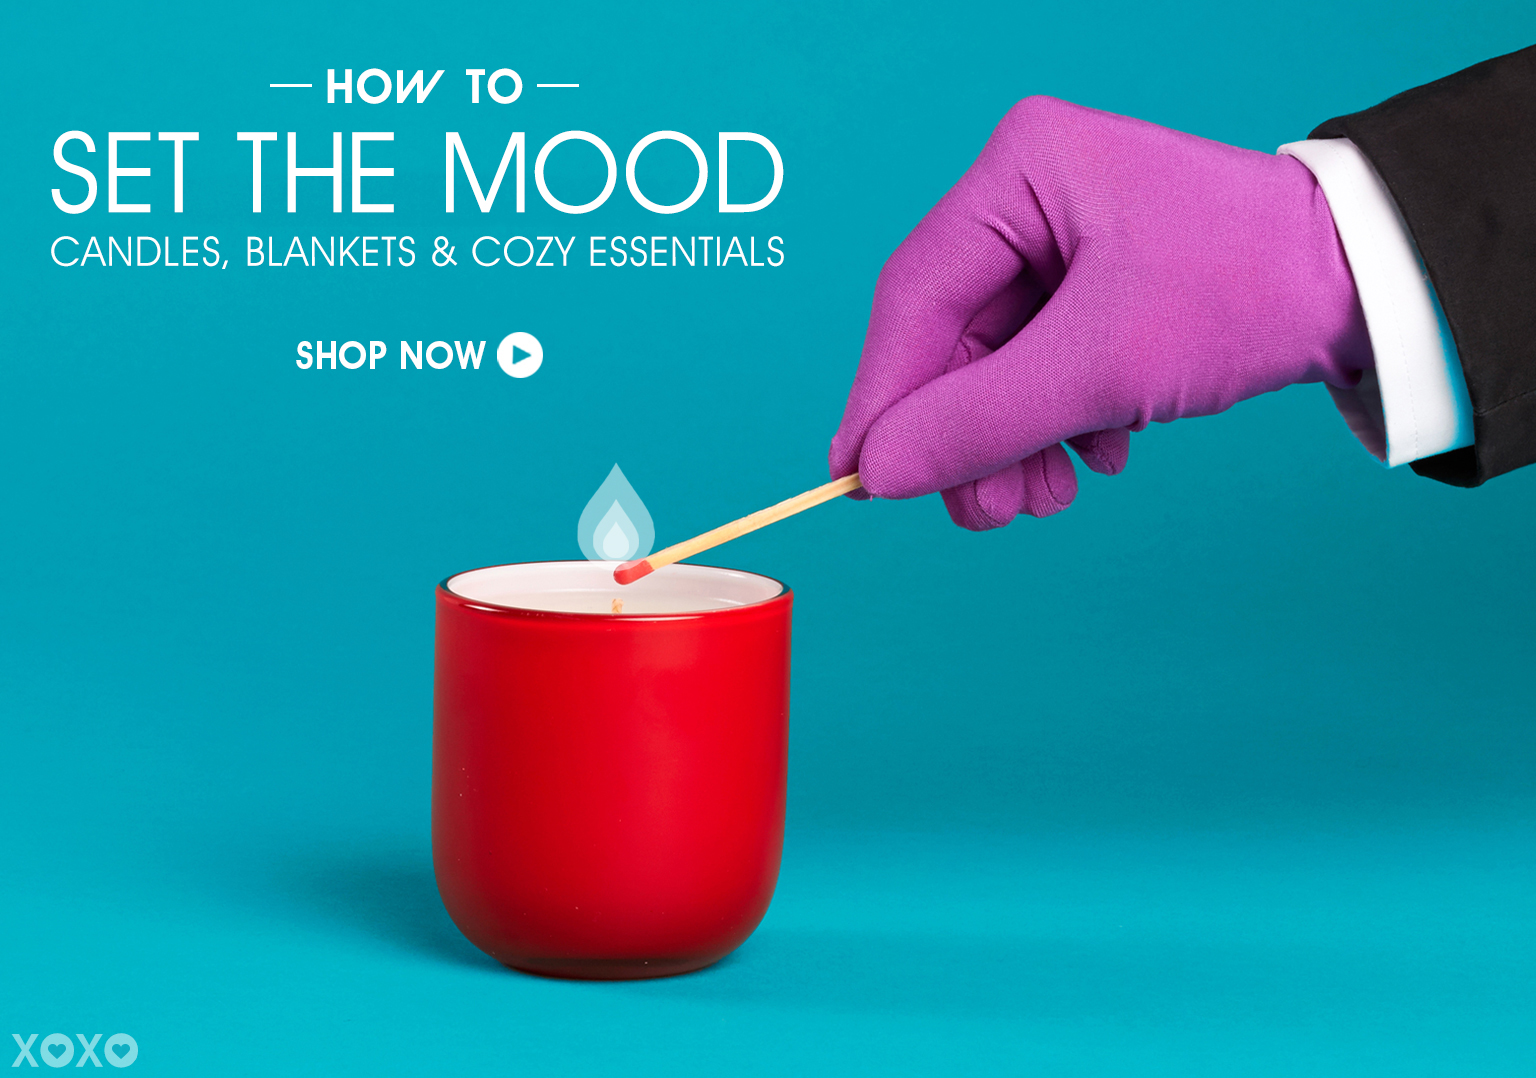 How To Set The Mood. Shop Candles, Blankets & Cozy Essentials.